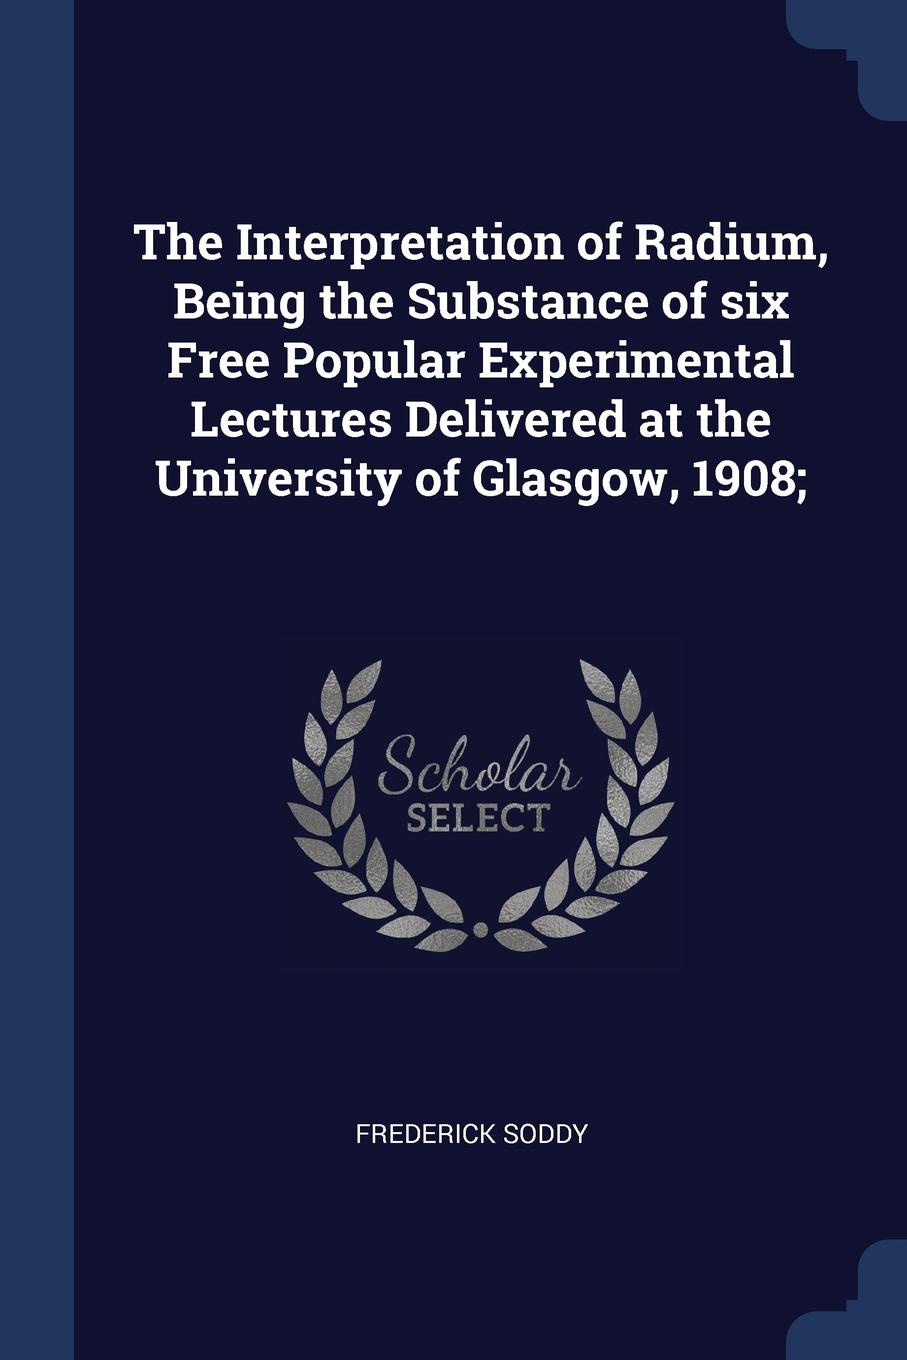 The Interpretation of Radium, Being the Substance of six Free Popular Experimental Lectures Delivered at the University of Glasgow, 1908;. Frederick Soddy